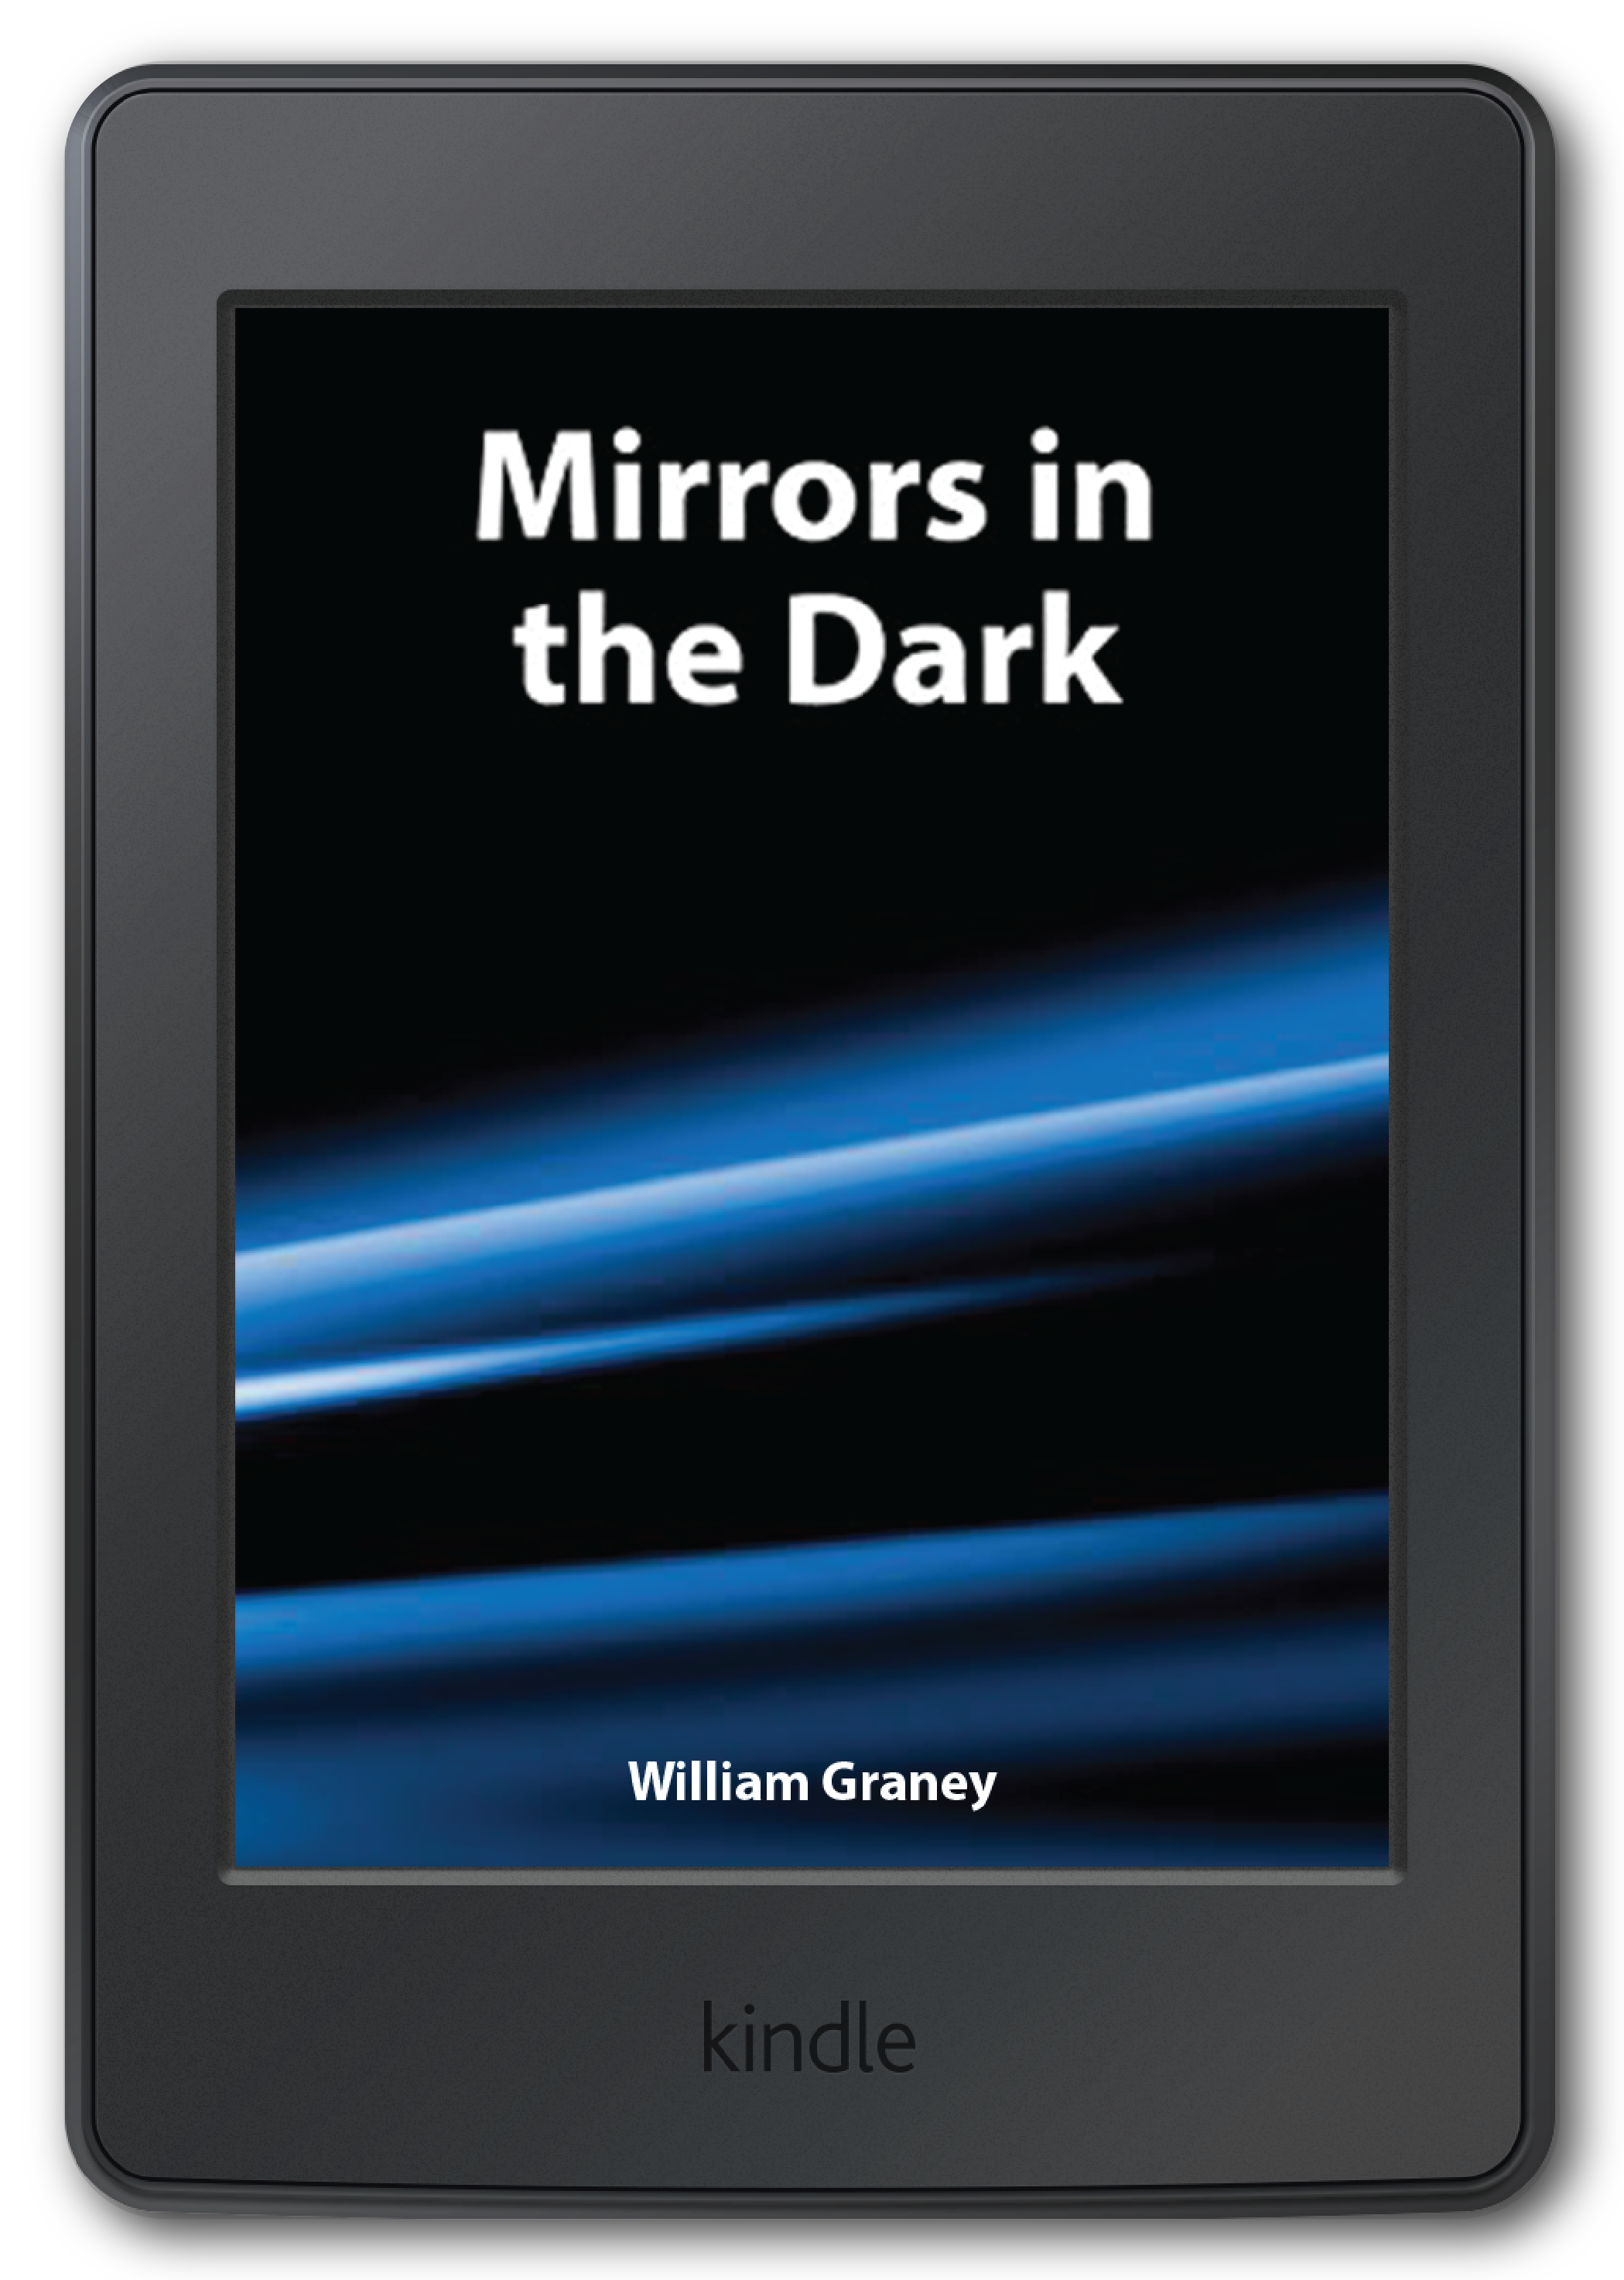 Mirrors in the Dark by William Graney